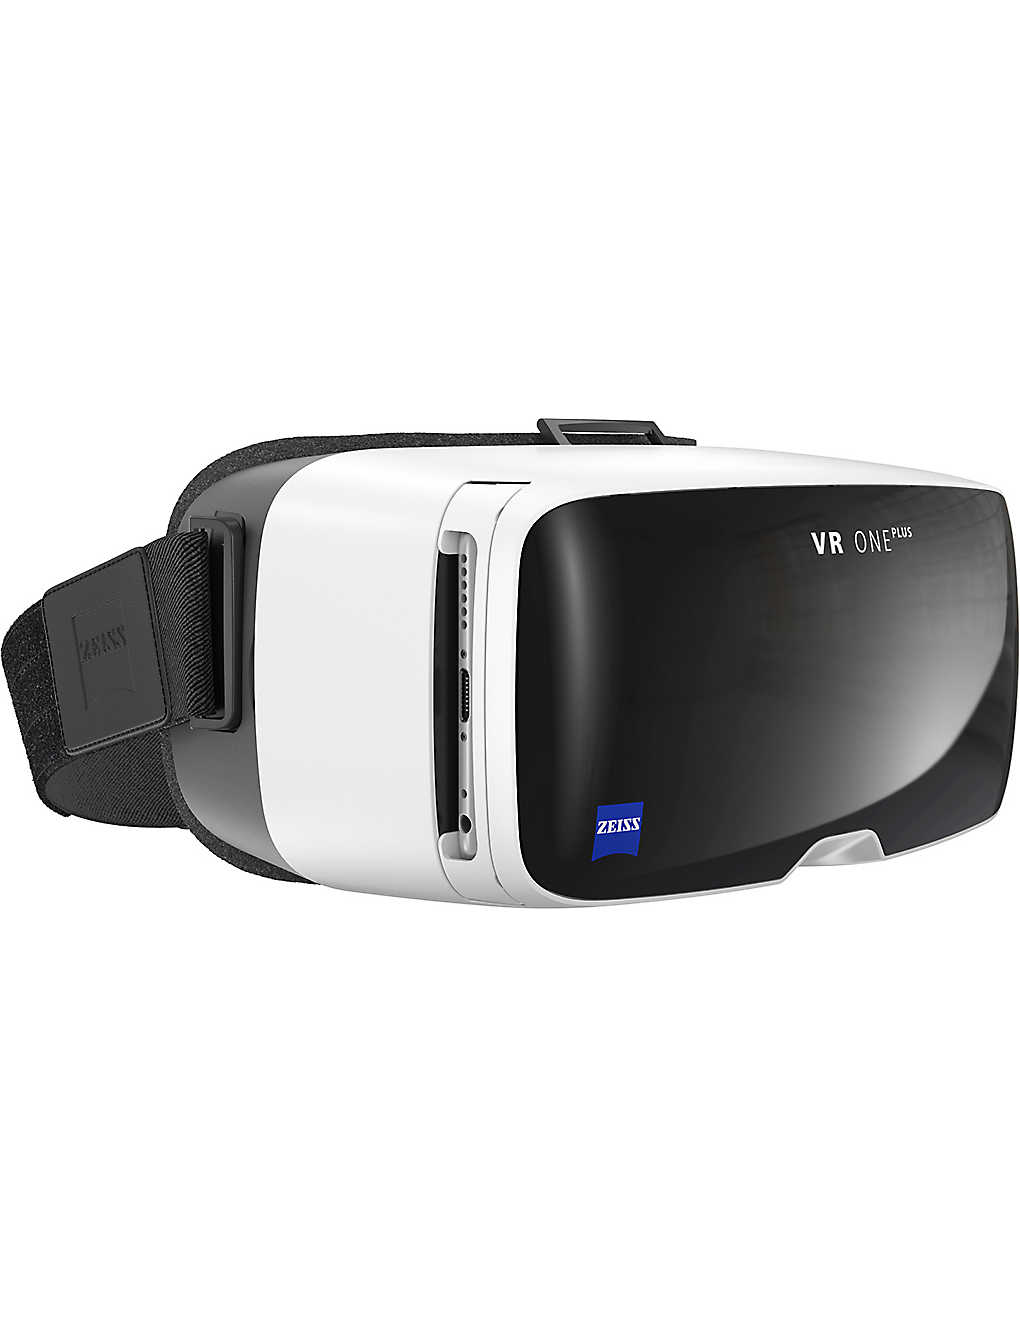 ZEISS: Virtual reality one plus headset